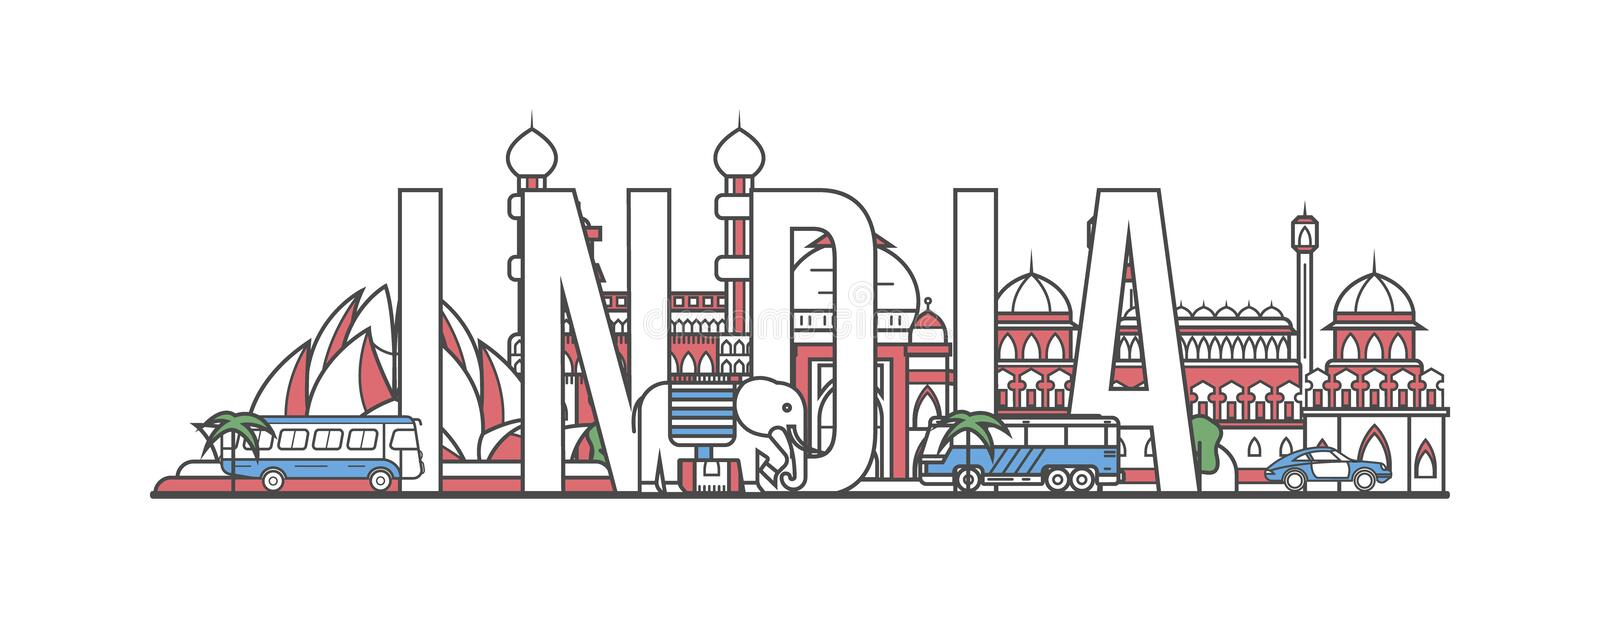 India travel lettering in linear style. India travel lettering with famous architectural monuments in linear style. Worldwide traveling and time to travel vector illustration